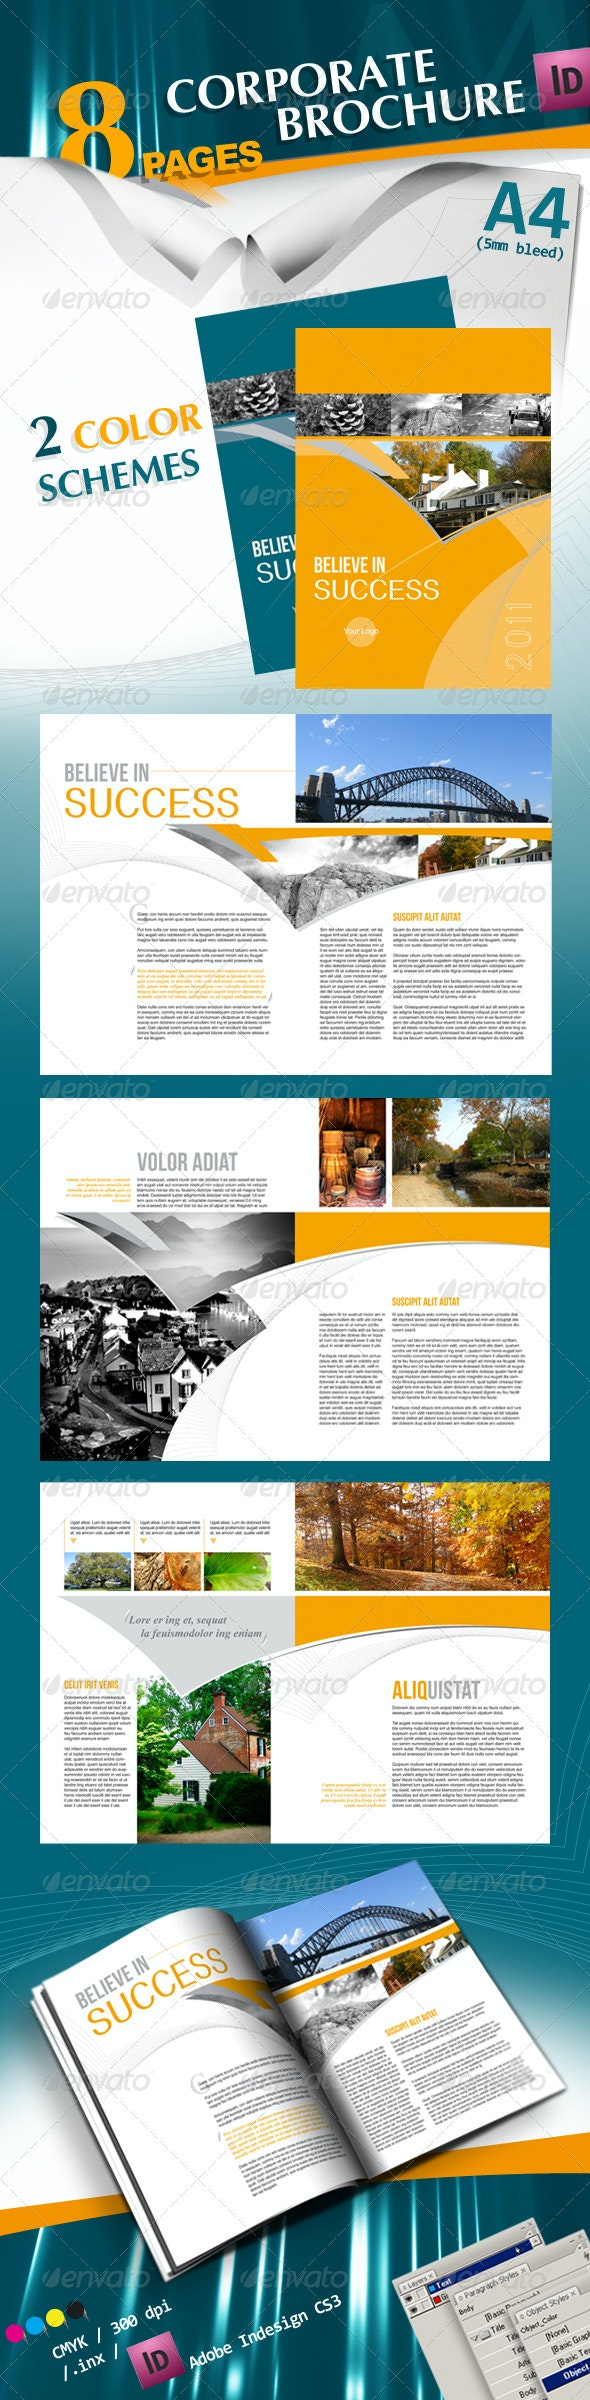 Corporate A4 Brochure in 2 Schemes of Color - Corporate Brochures